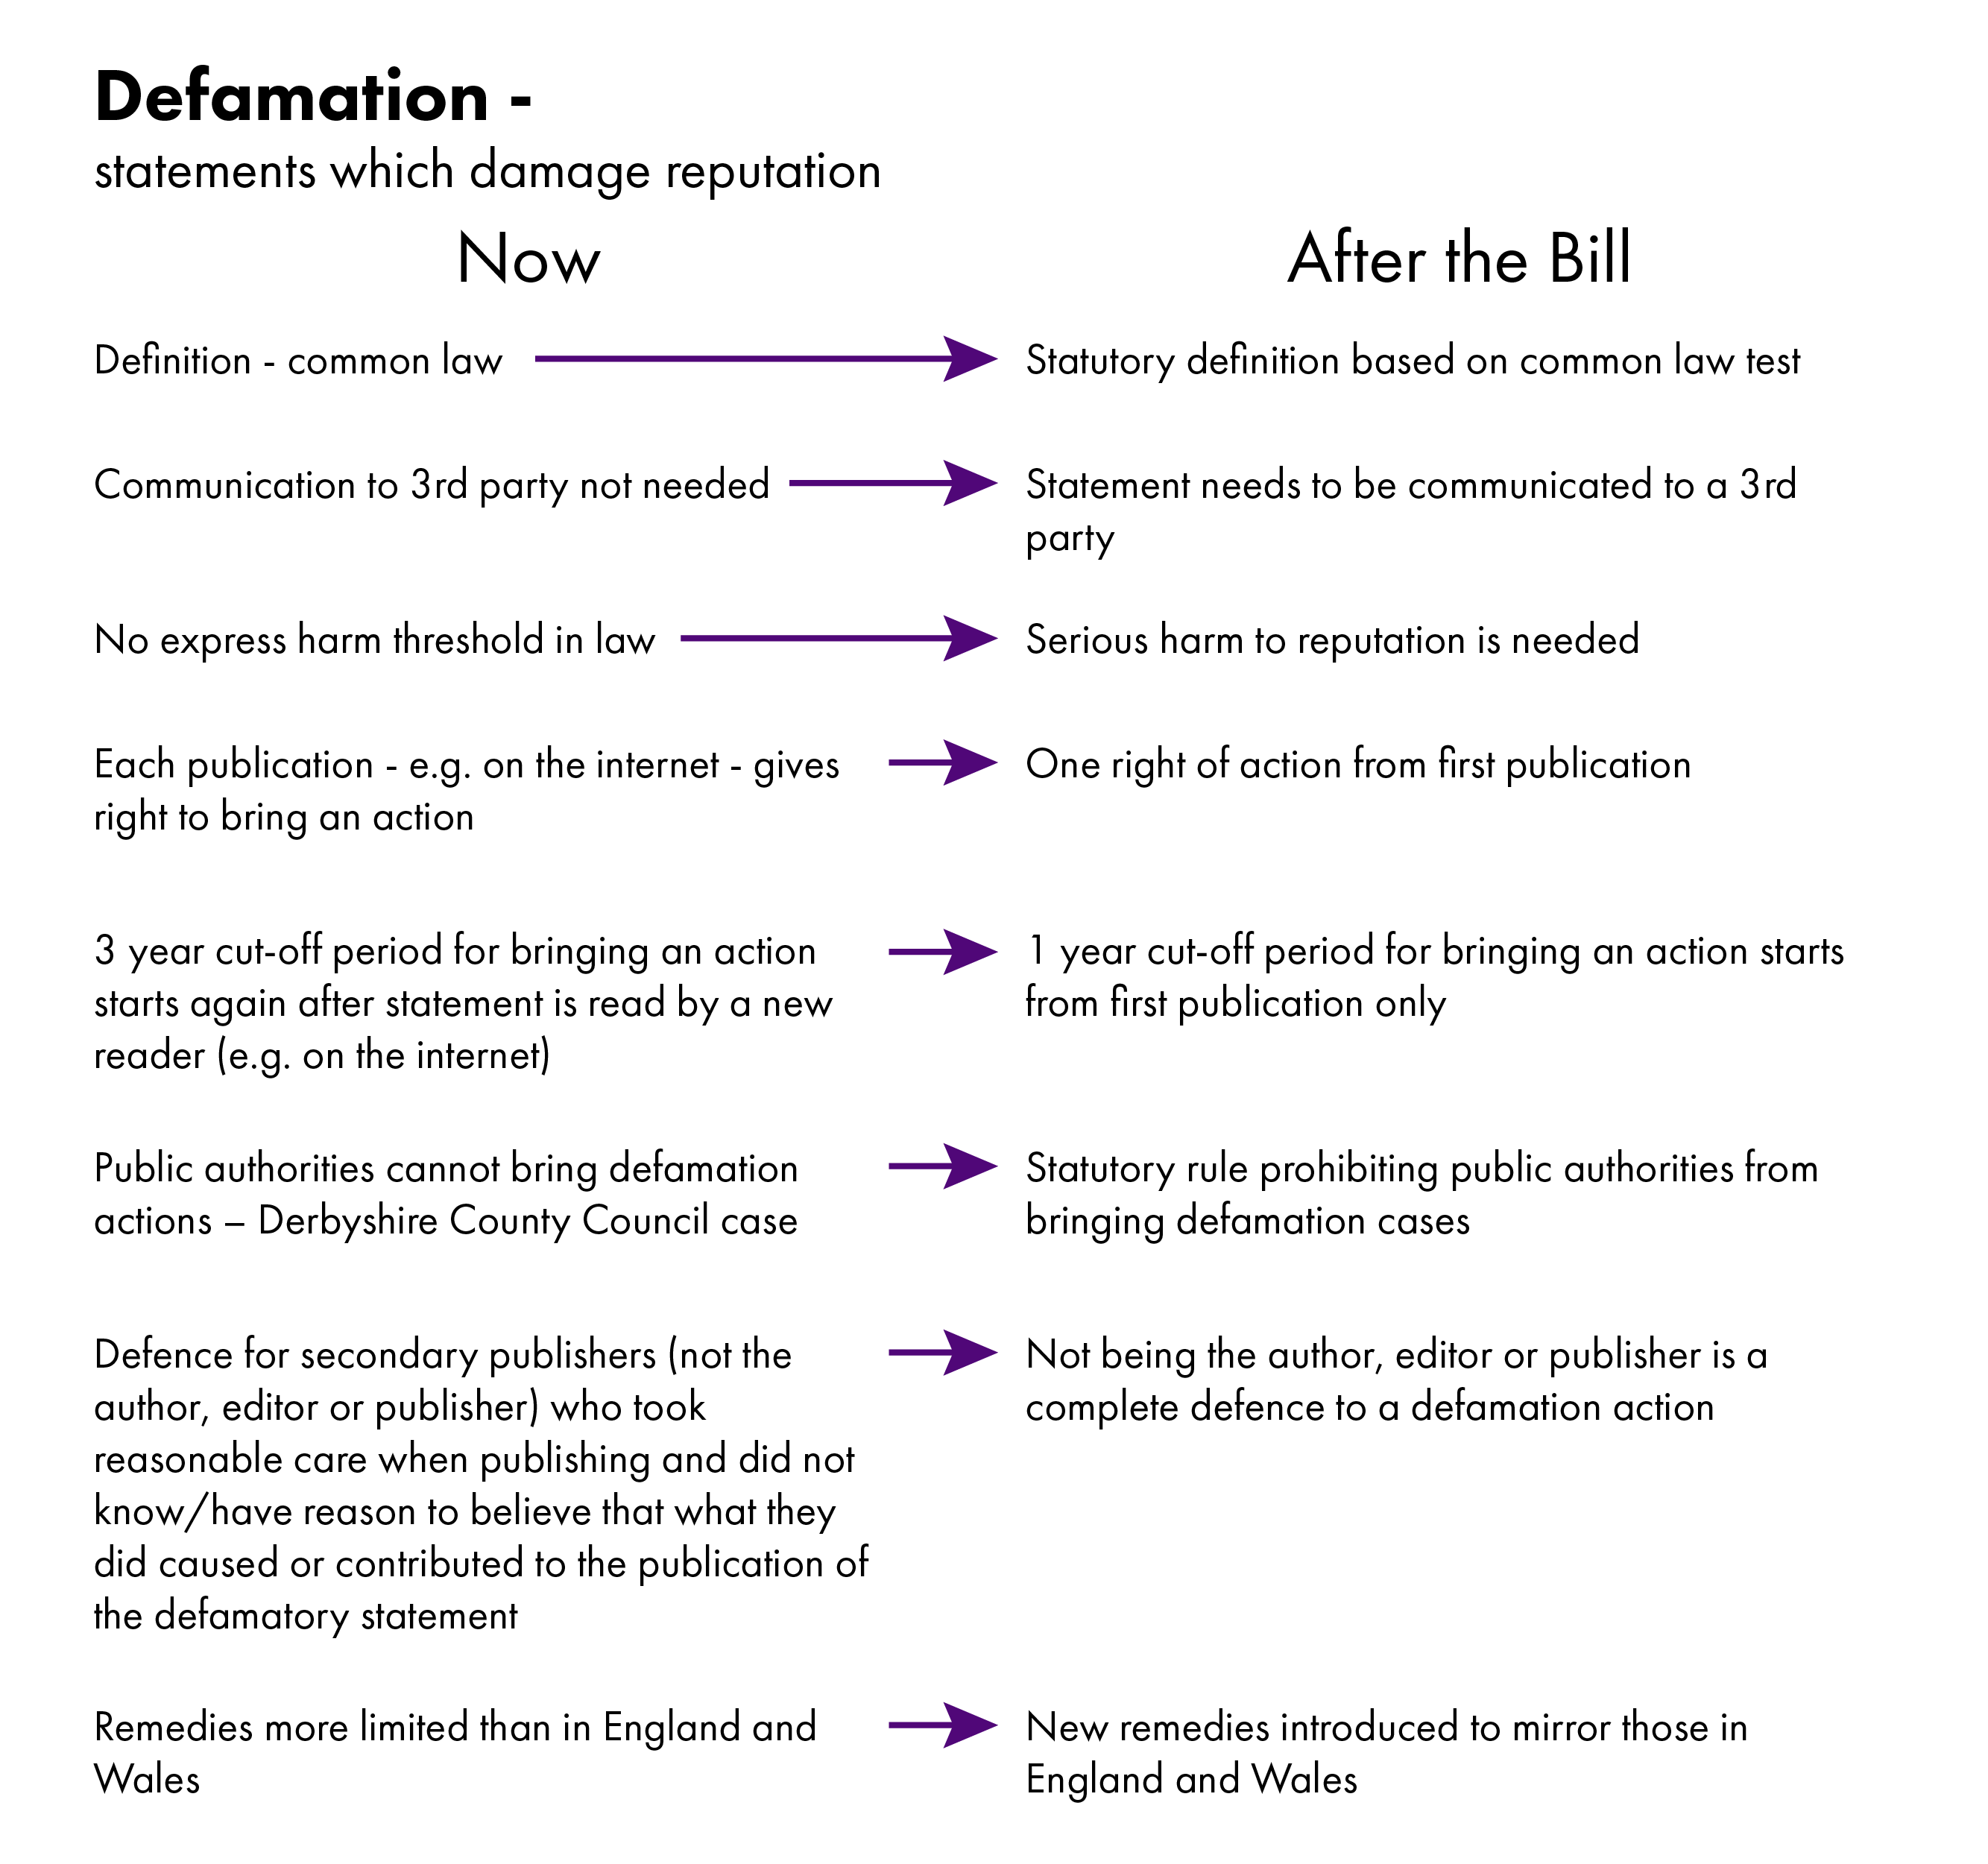 Infographic showing the current law and the main changes proposed by the Bill.